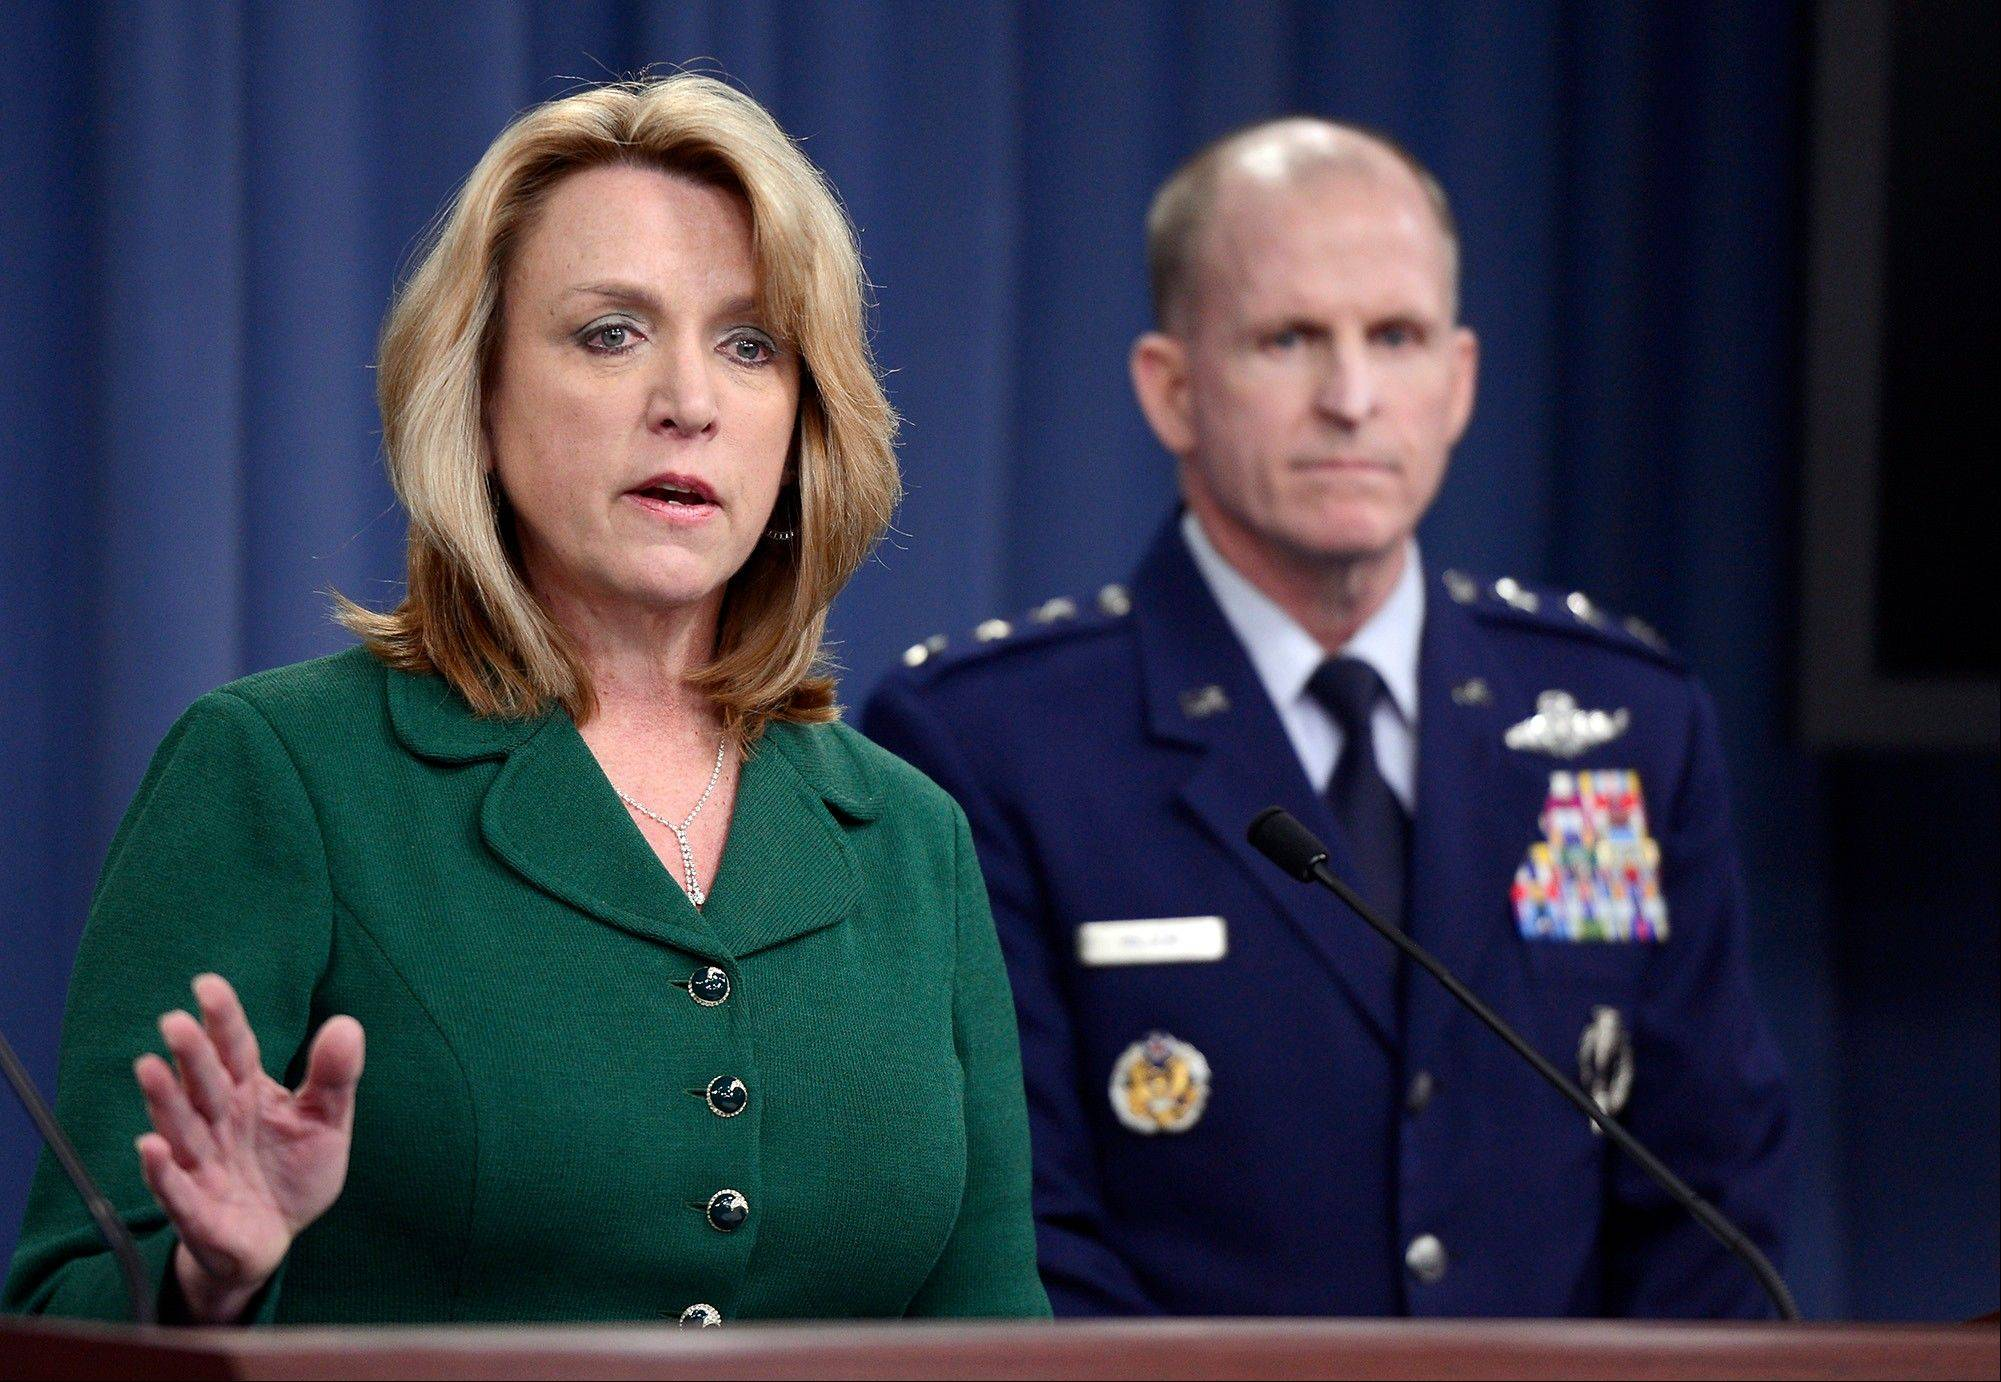 Air Force Secretary Deborah Lee James and Lt. Gen. Stephen Wilson, who heads Global Strike Command hold a news conference at the Pentagon, Thursday, Jan. 30, 2014 in Washington. James said Thursday that at Malmstrom Air Force Base in Montana, roughly half of the 183 missile launch officers have been implicated in the cheating.